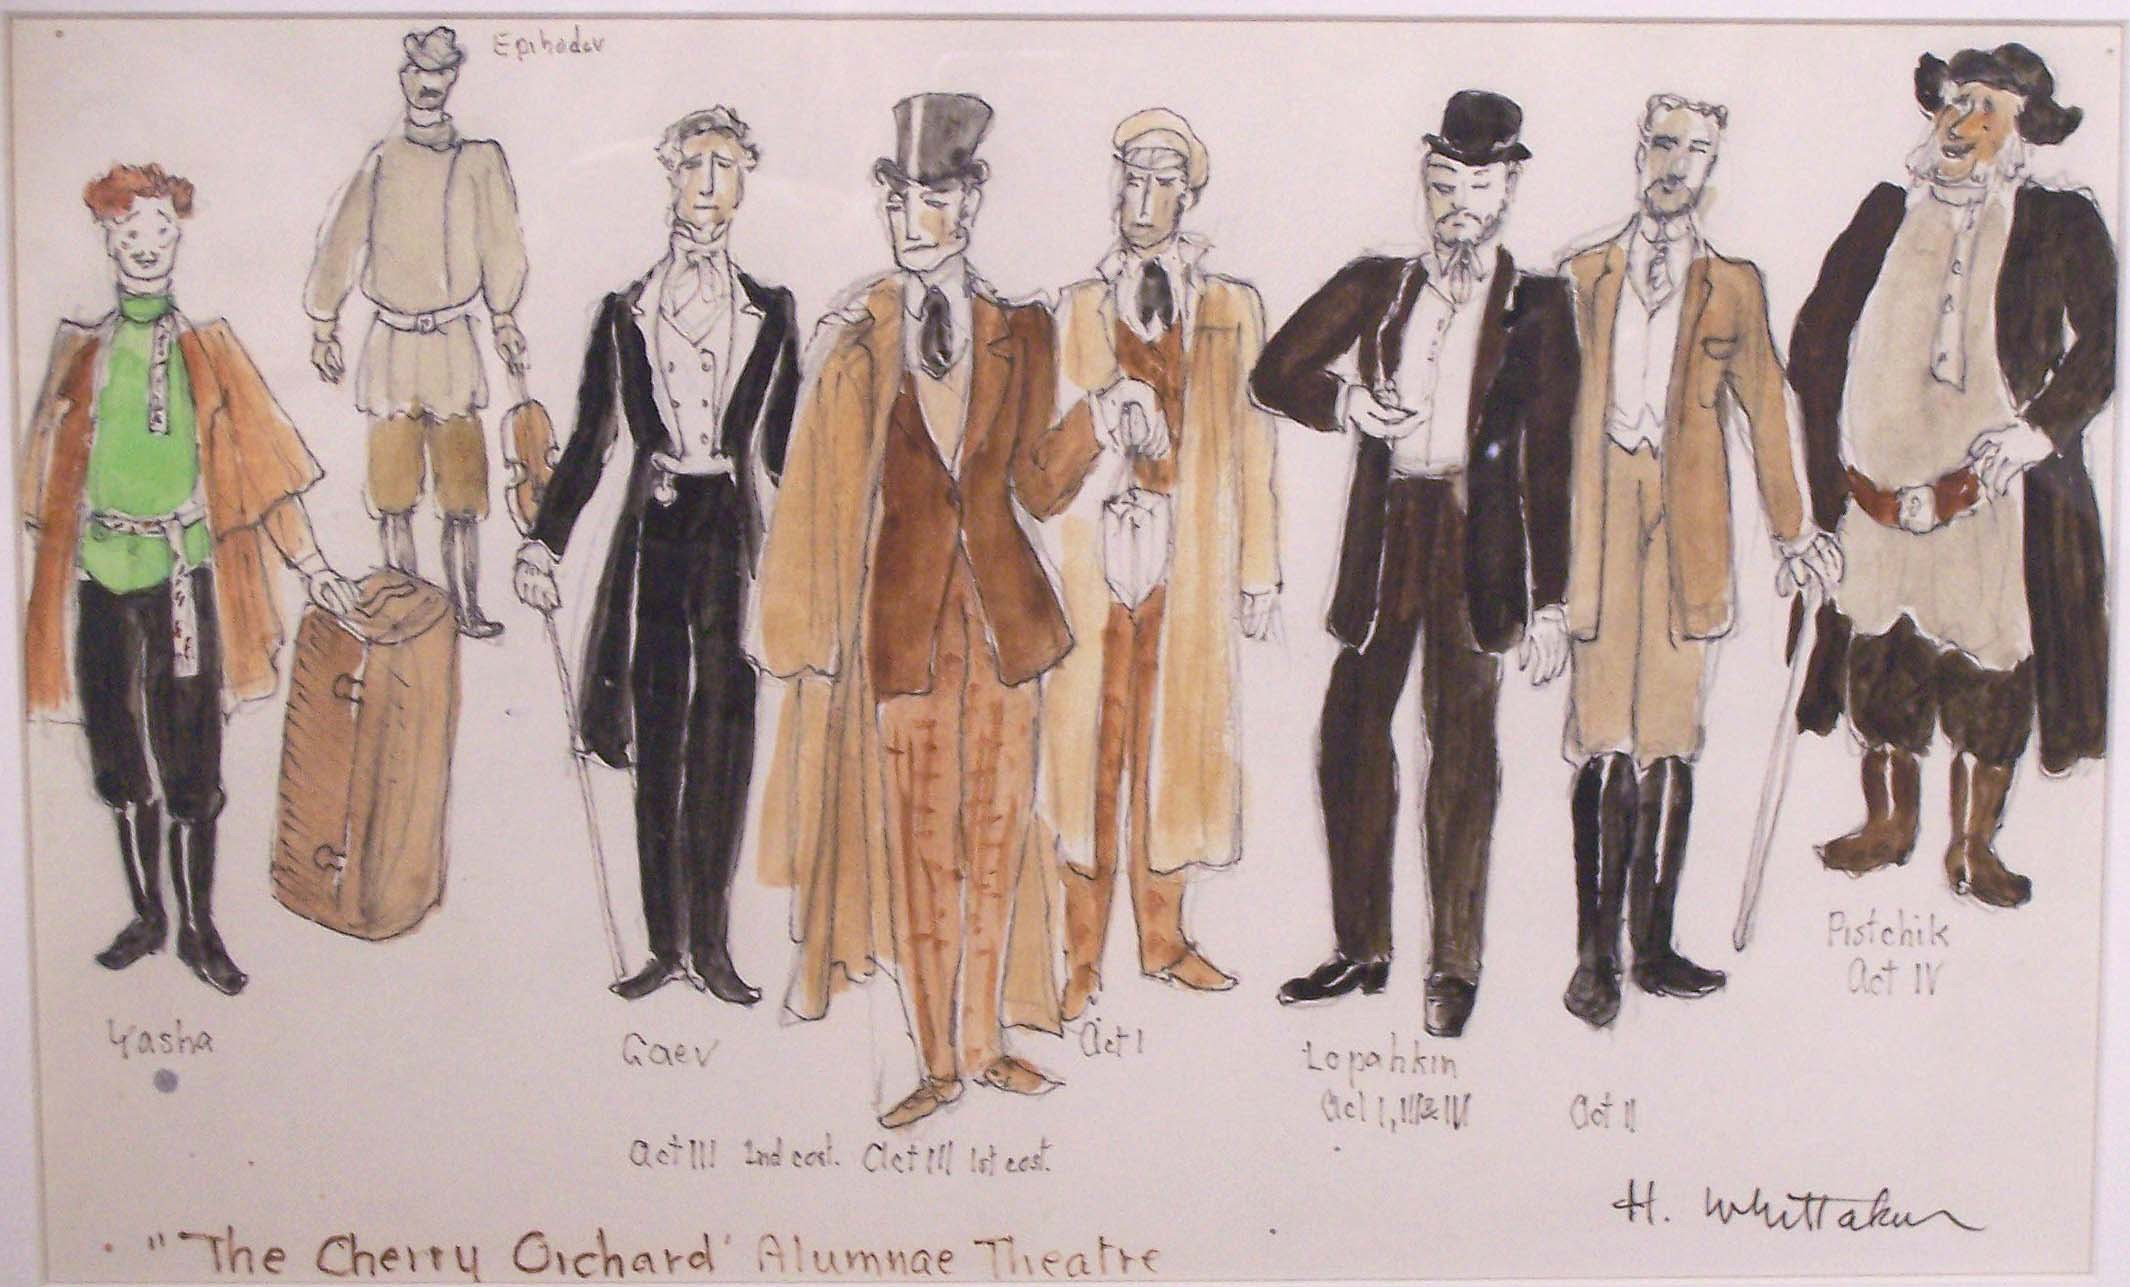 Whittaker costume design for The Cherry Orchard